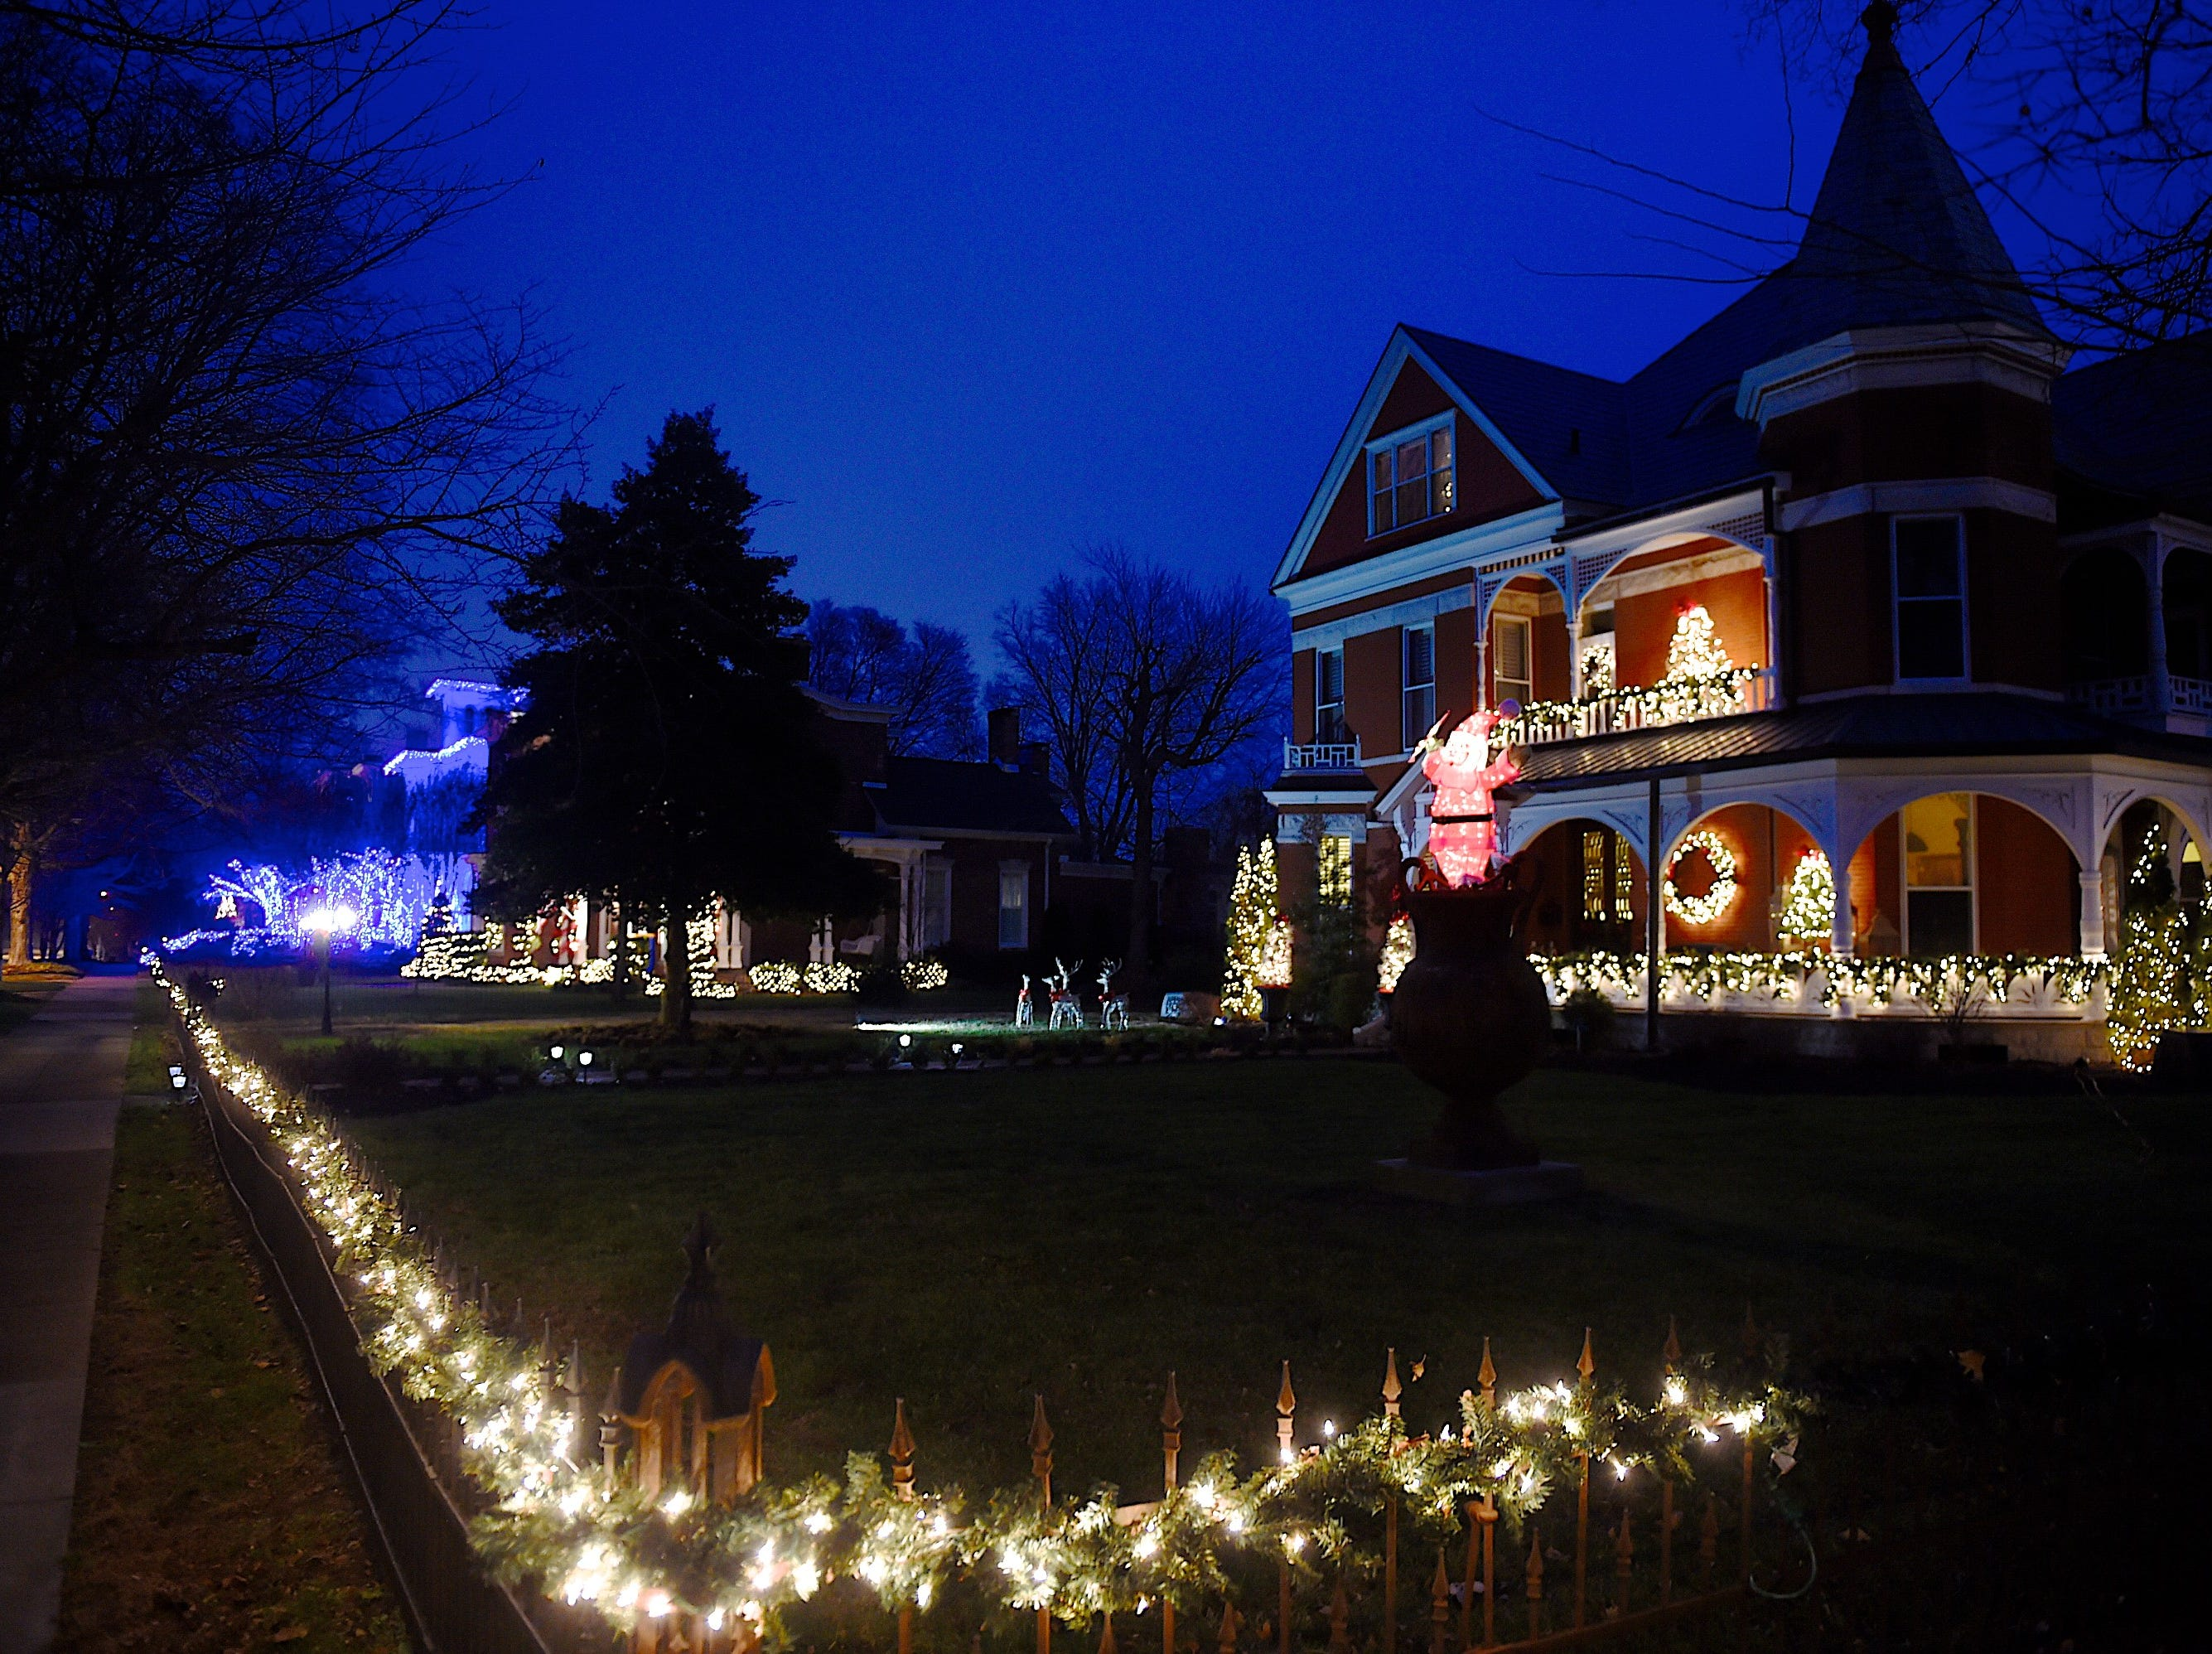 The Liles home on North Main (right) begins a row of historic homes decorated to the nines Tuesday evening, December 9, 2014.